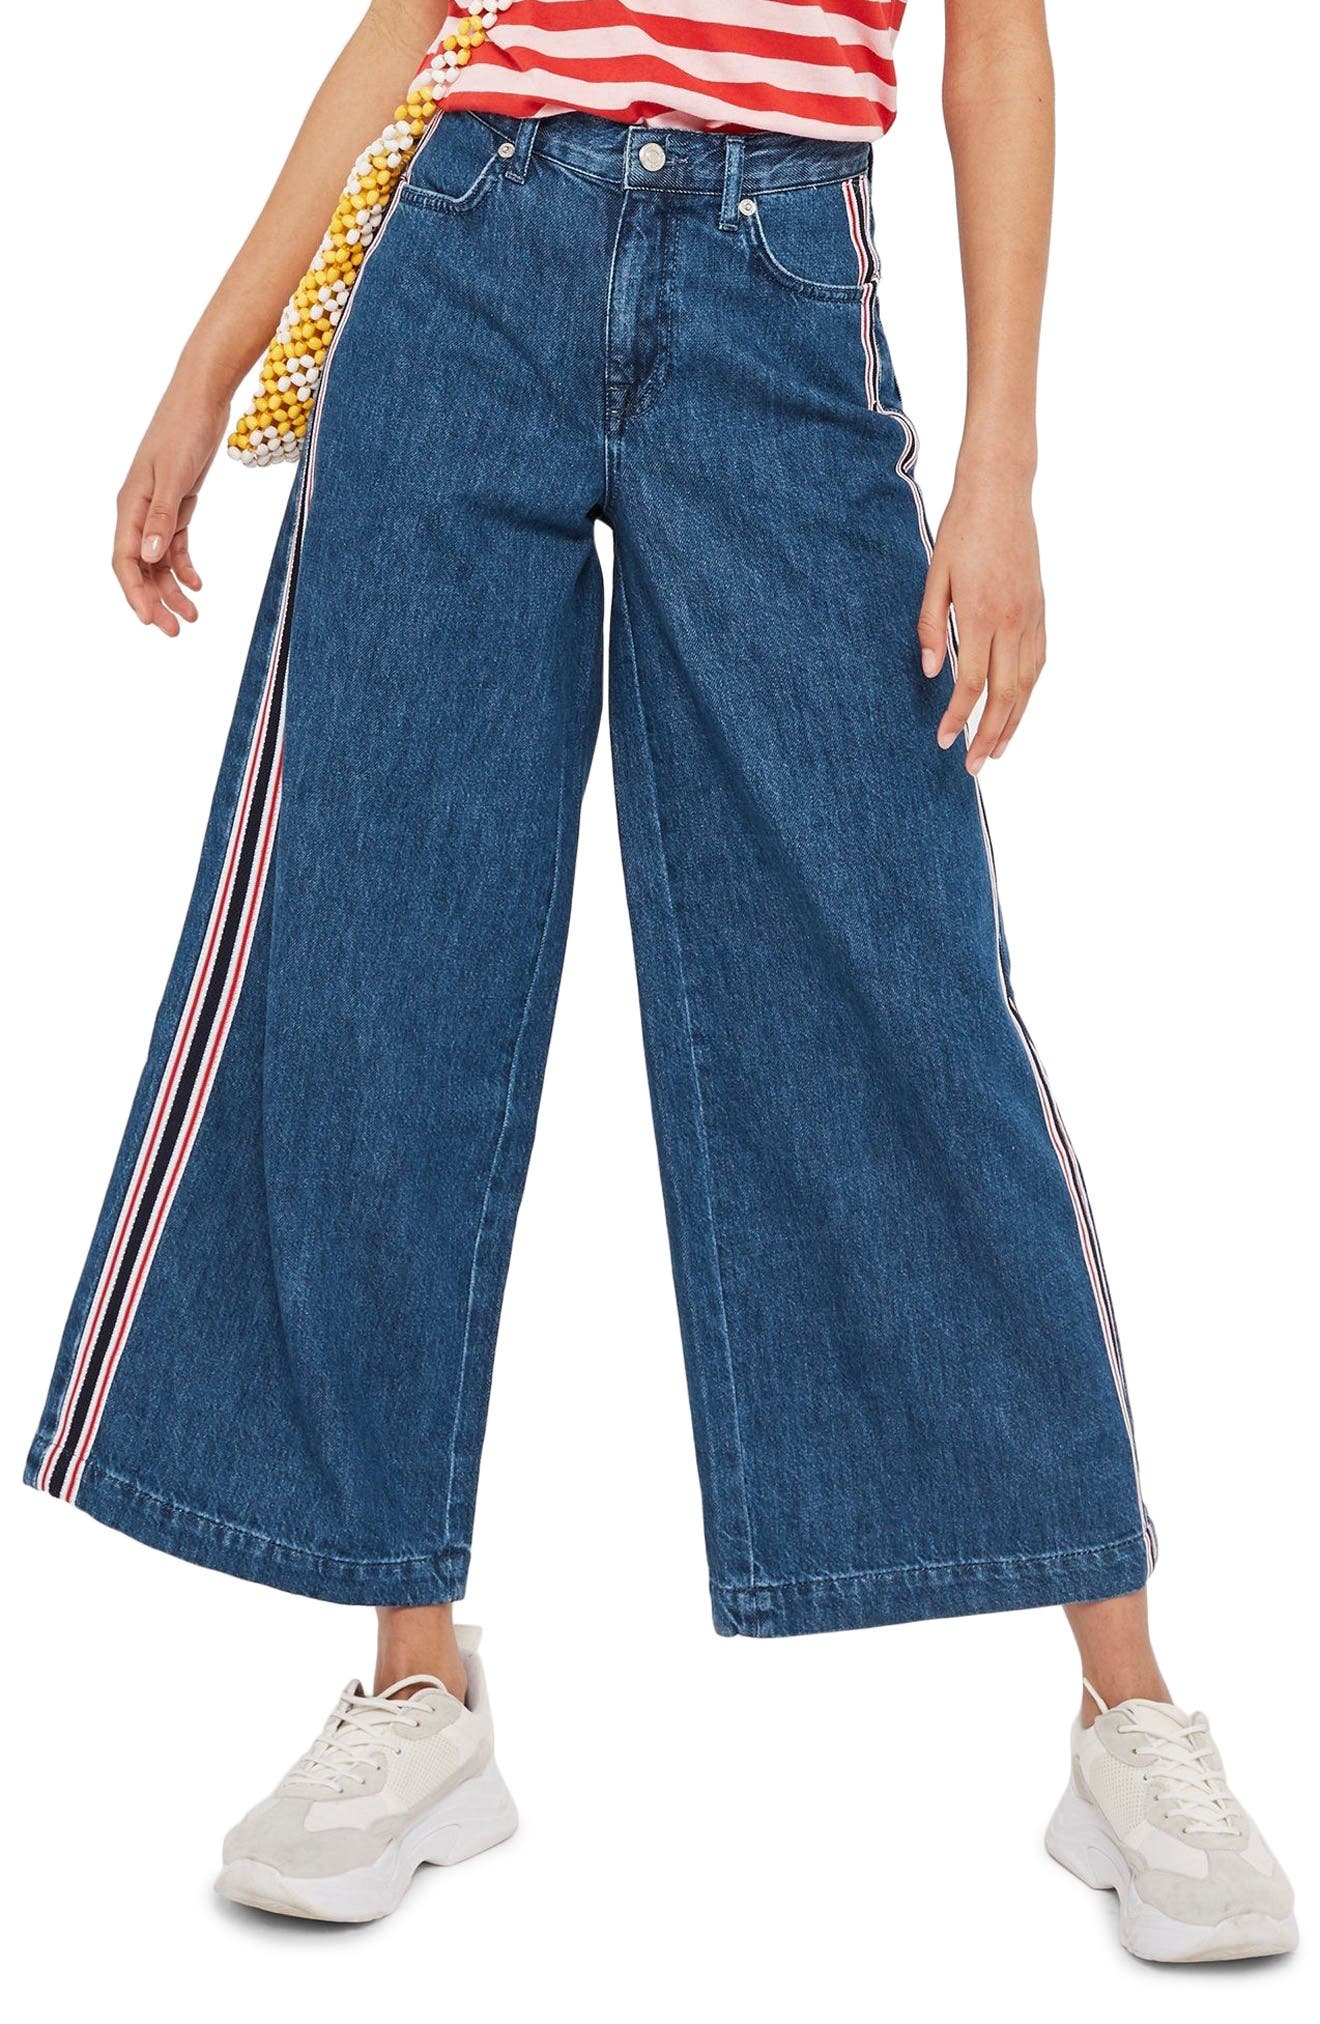 MOTO Stripe Wide Leg Non-Stretch Jeans,                             Main thumbnail 1, color,                             400